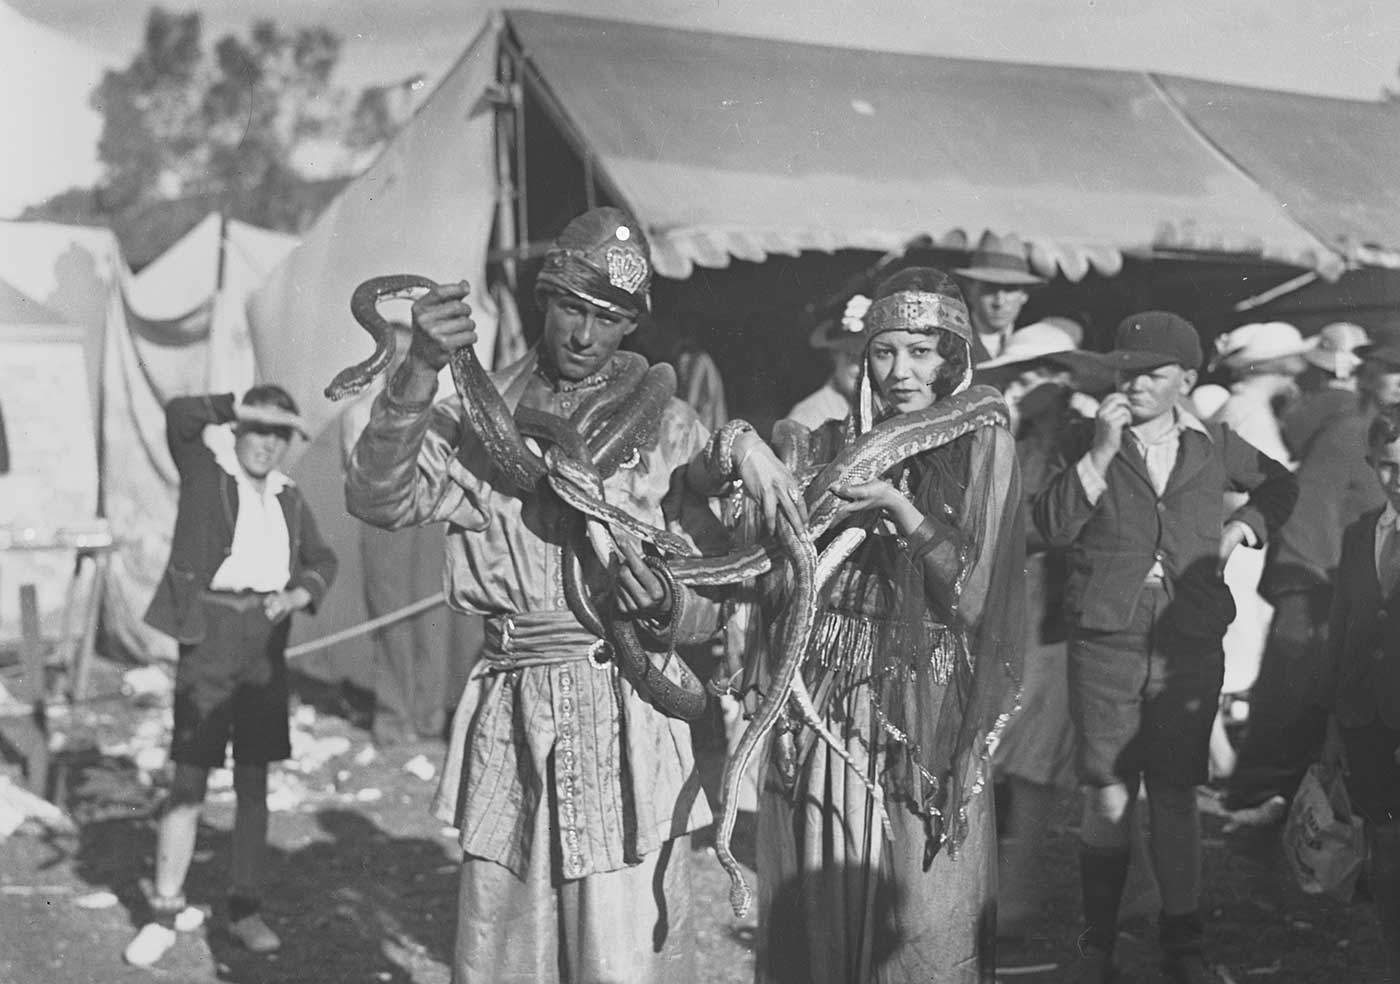 A man and a woman with snakes draped around their necks. Several onlookers are visible in the background. - click to view larger image